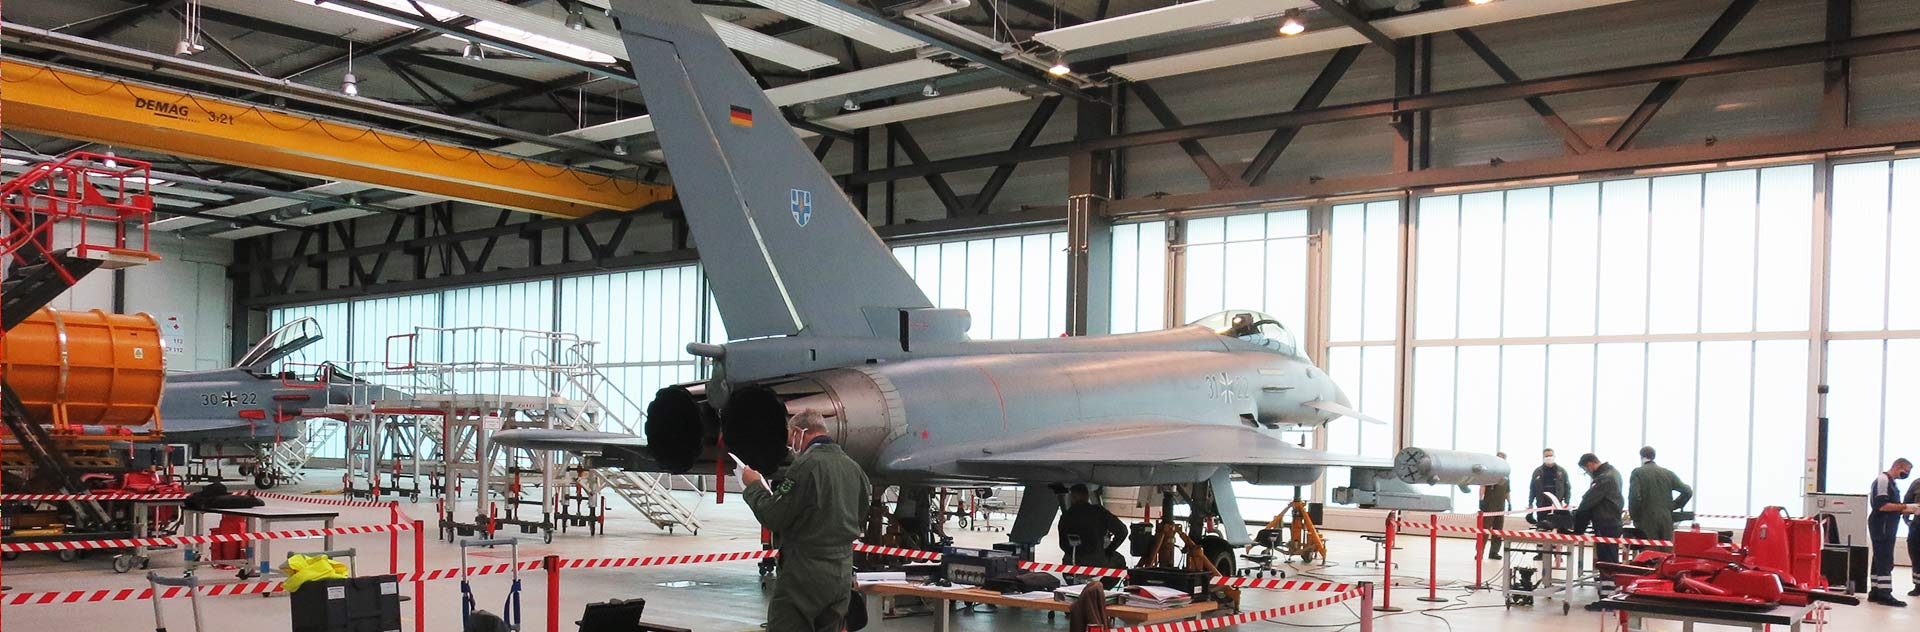 Successful System Acceptance Test and delivery of an aircraft weighing system for the German Armed Forces